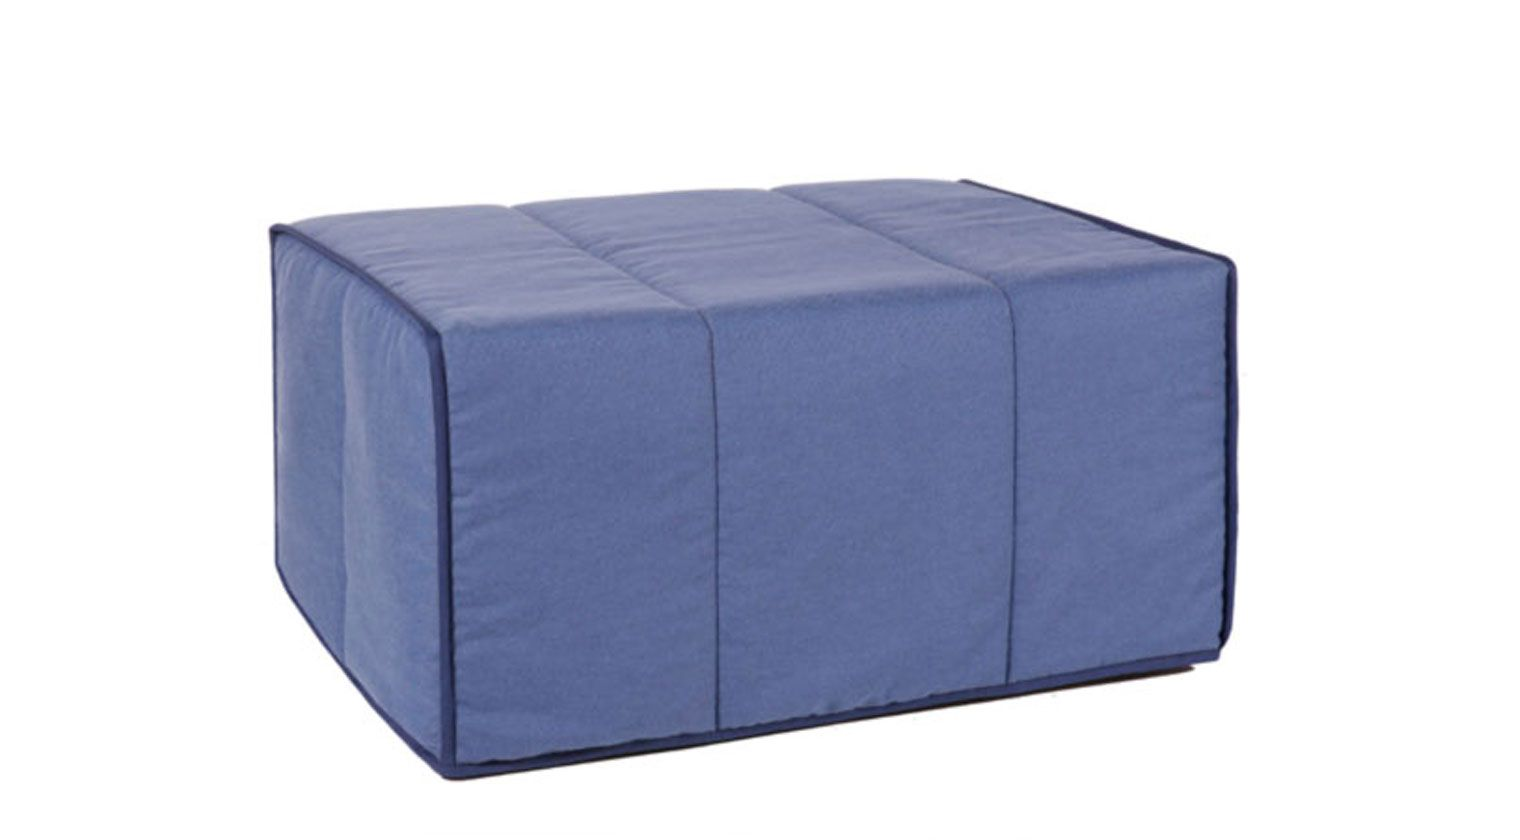 Puff cama 80 puffs interiores for Sofa cama puff barato